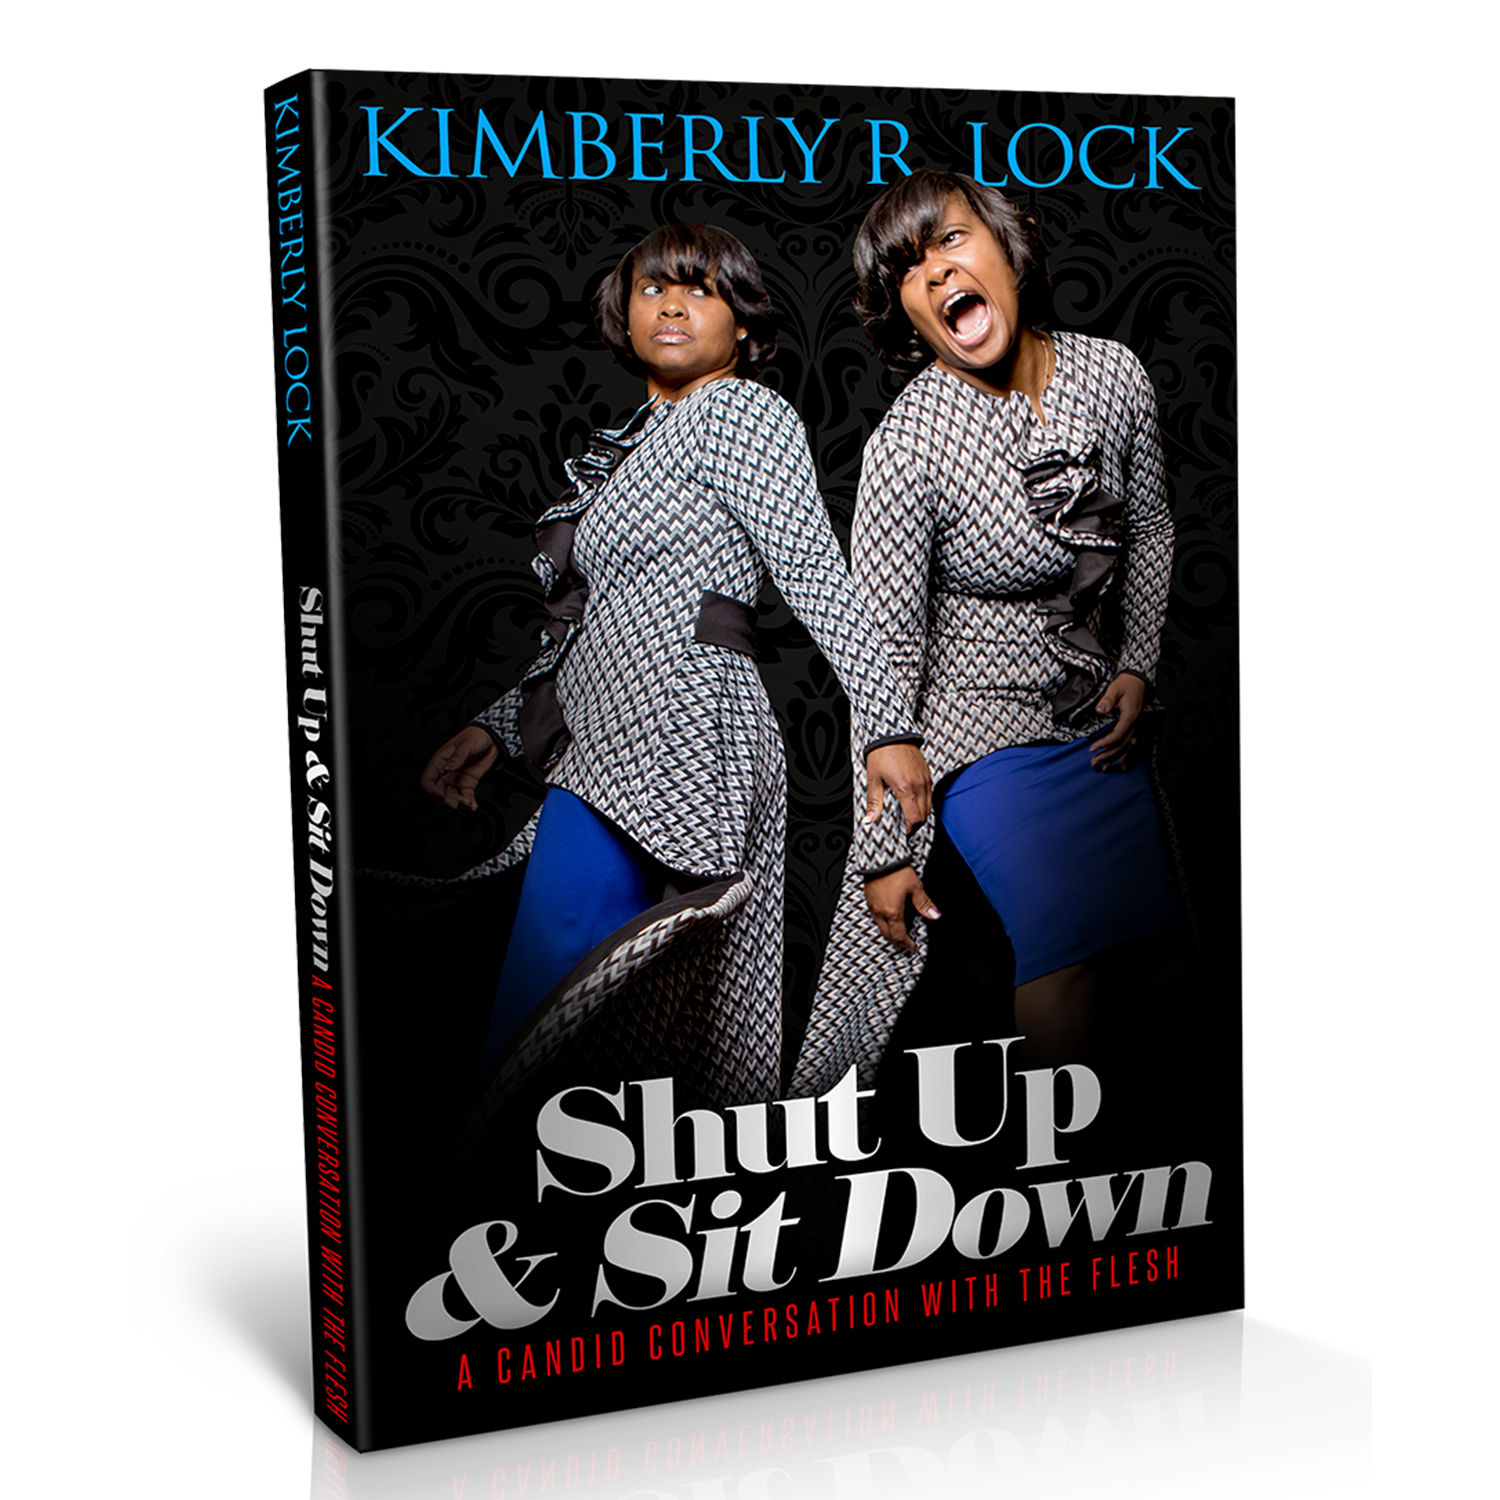 shut-up-sit-down-book-for-sale